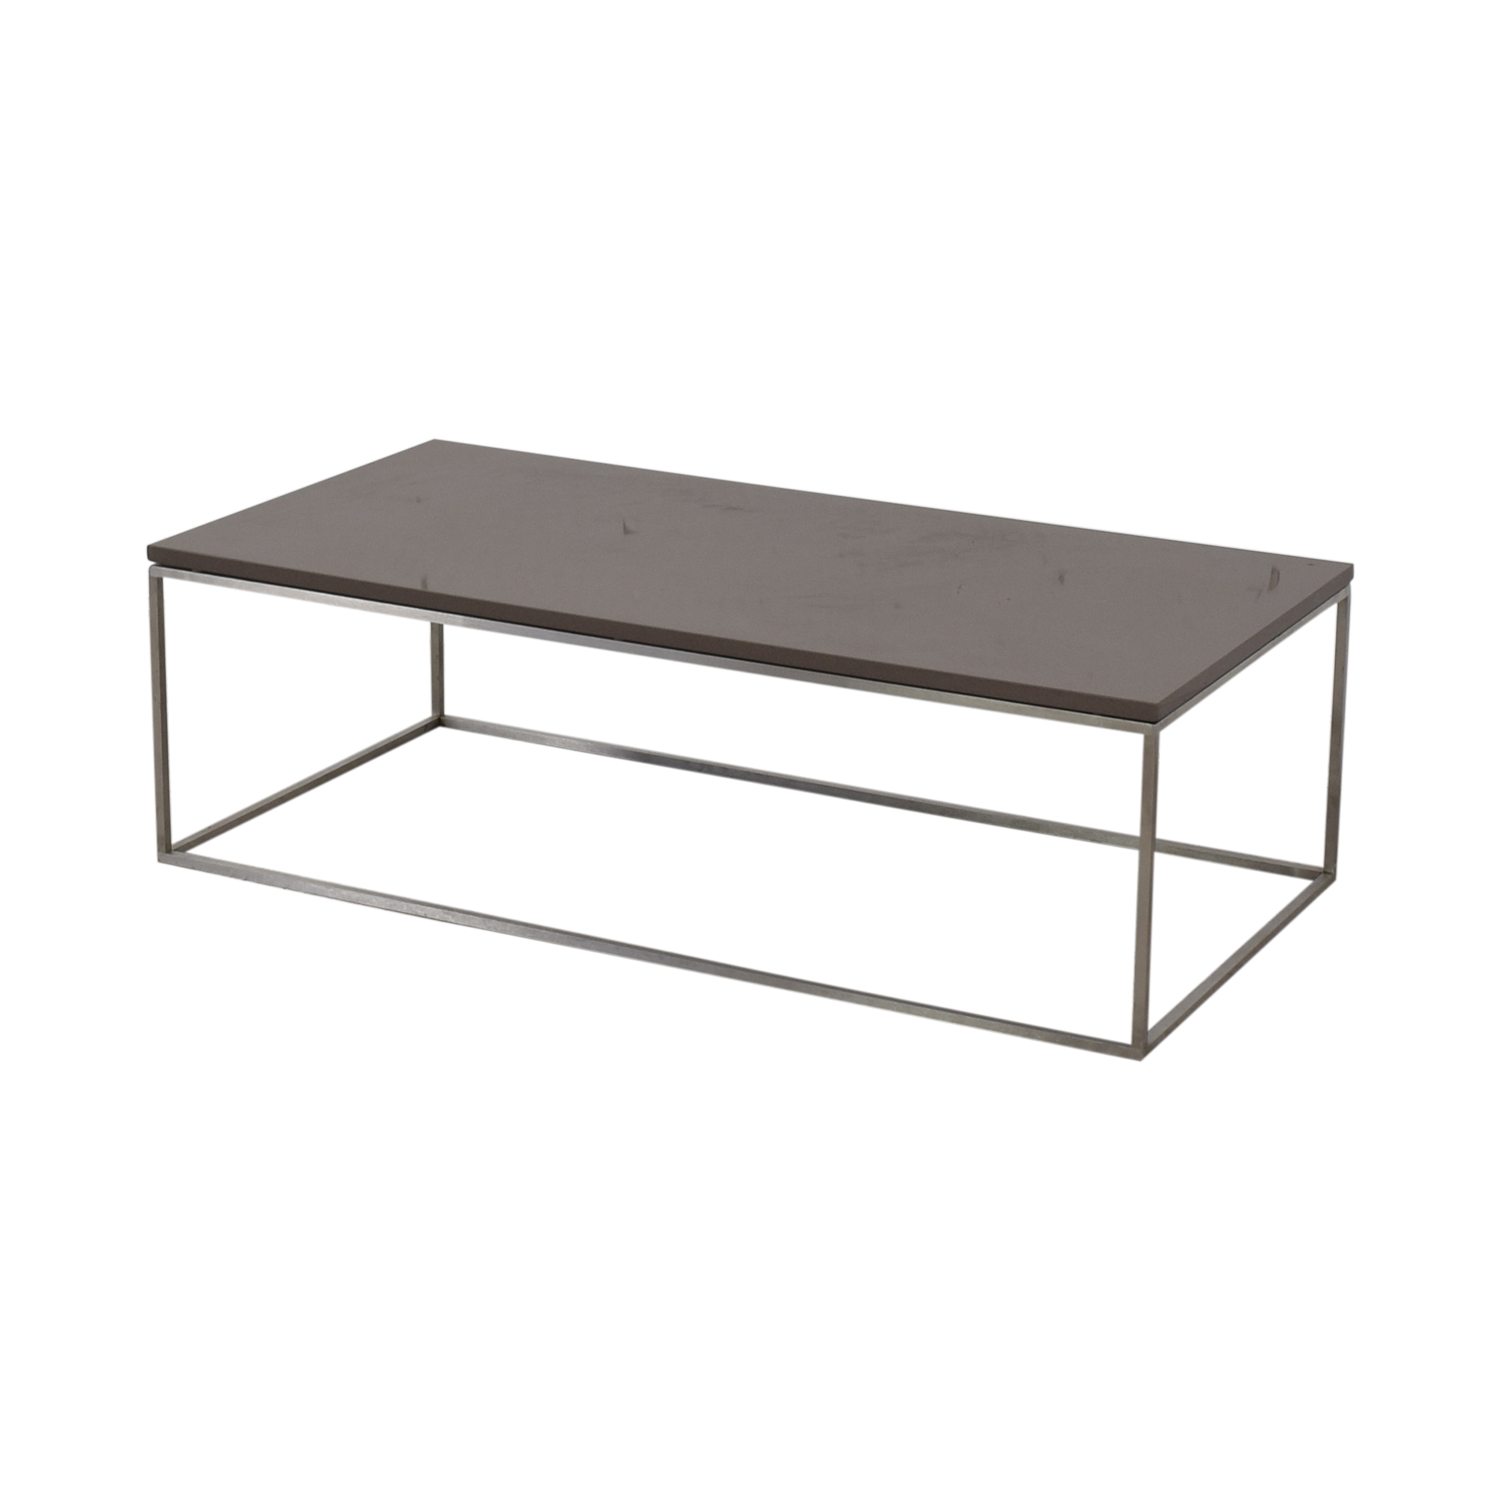 Room & Board Room & Board Coffee Table on sale